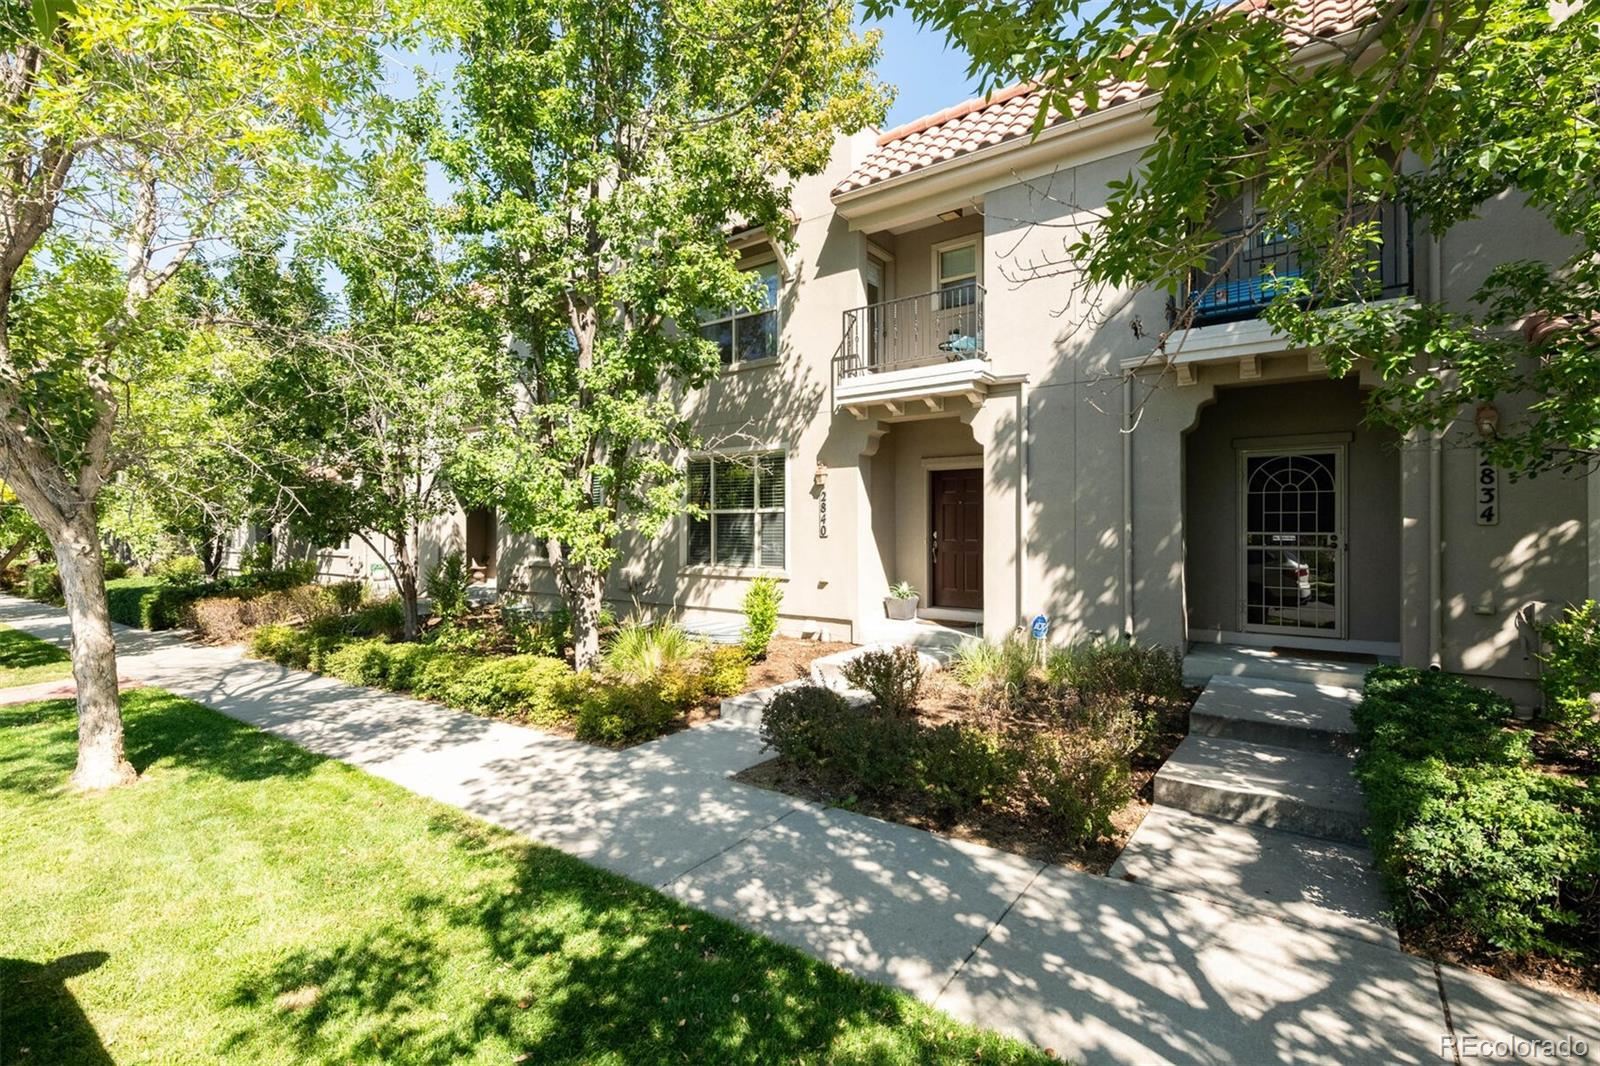 NO SHOWINGS UNTIL FRIDAY, SEPTEMBER 18th! Beautiful townhome near the Central Park (formerly Stapleton) Town Center with restaurants and shops all within walking distance. Truly an unbeatable location. 3 bedrooms upstairs with a 4th bedroom in the basement which serves as a conforming guest suite with a guest bathroom. The kitchen, master bathroom and 2nd floor guest bathroom were remodeled and look amazing. Detached 2-car garage with a private yard and large patio connecting the home to the garage. Master suite has an outdoor balcony for your convenience. This is a gorgeous home that is move-in ready. Schedule your showing today! Don't hesitate!